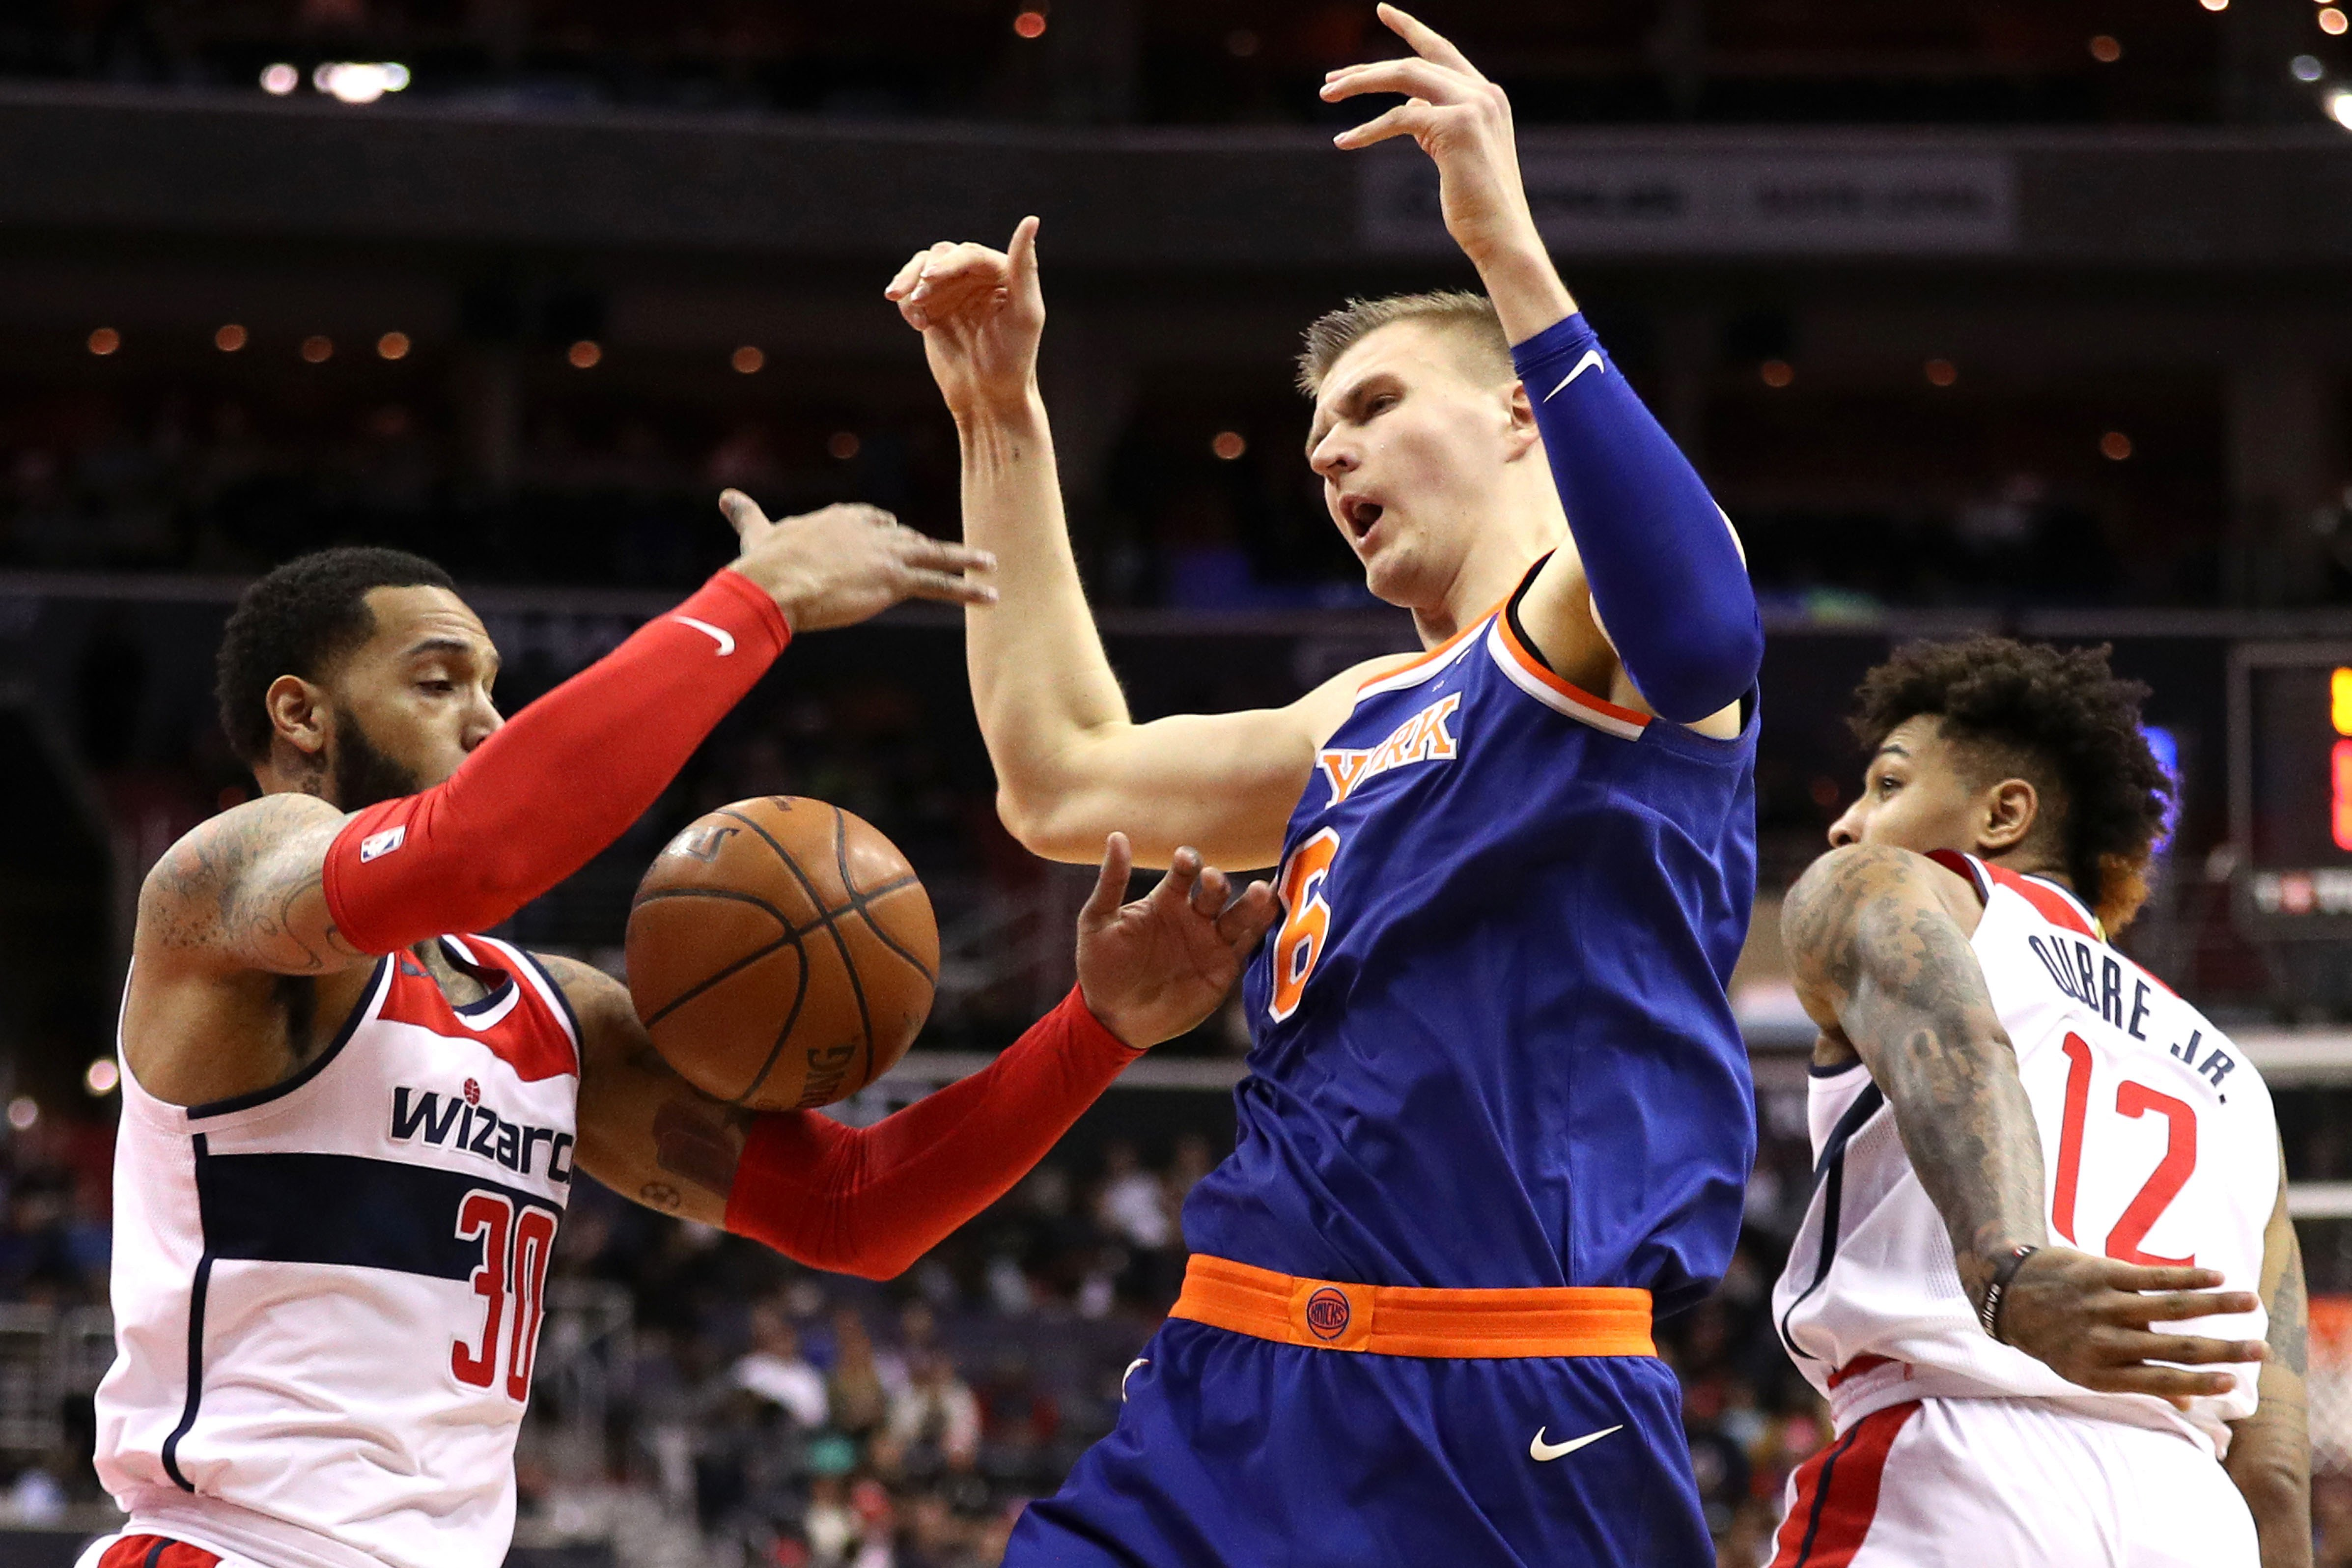 Knicks have a second half to forget in ugly loss to Wizards